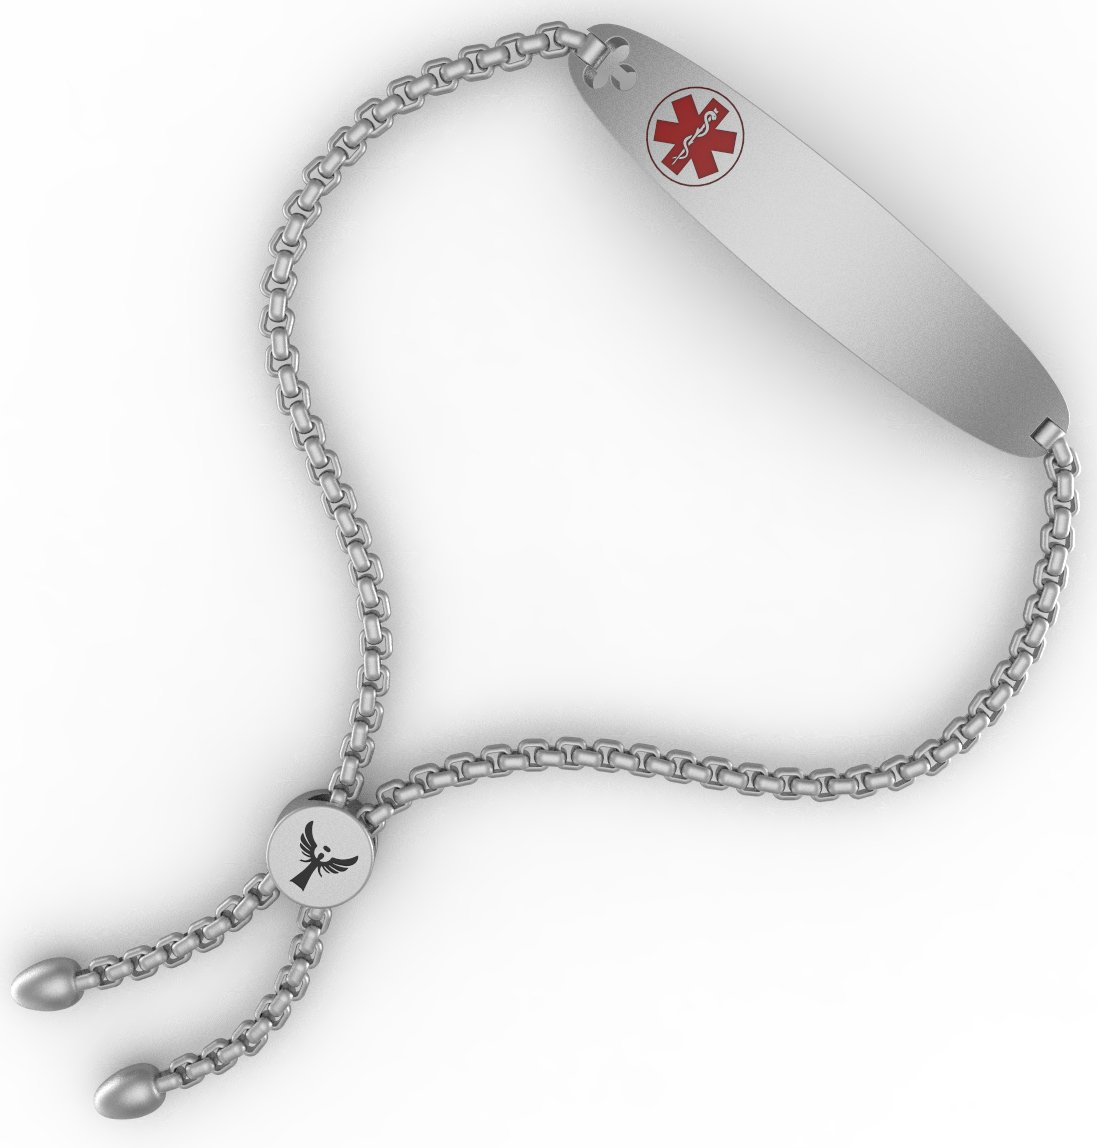 WelMag Women's Charm Adjustable Medical Alert ID Bracelets with Free Engraving (Silvery 2.0)